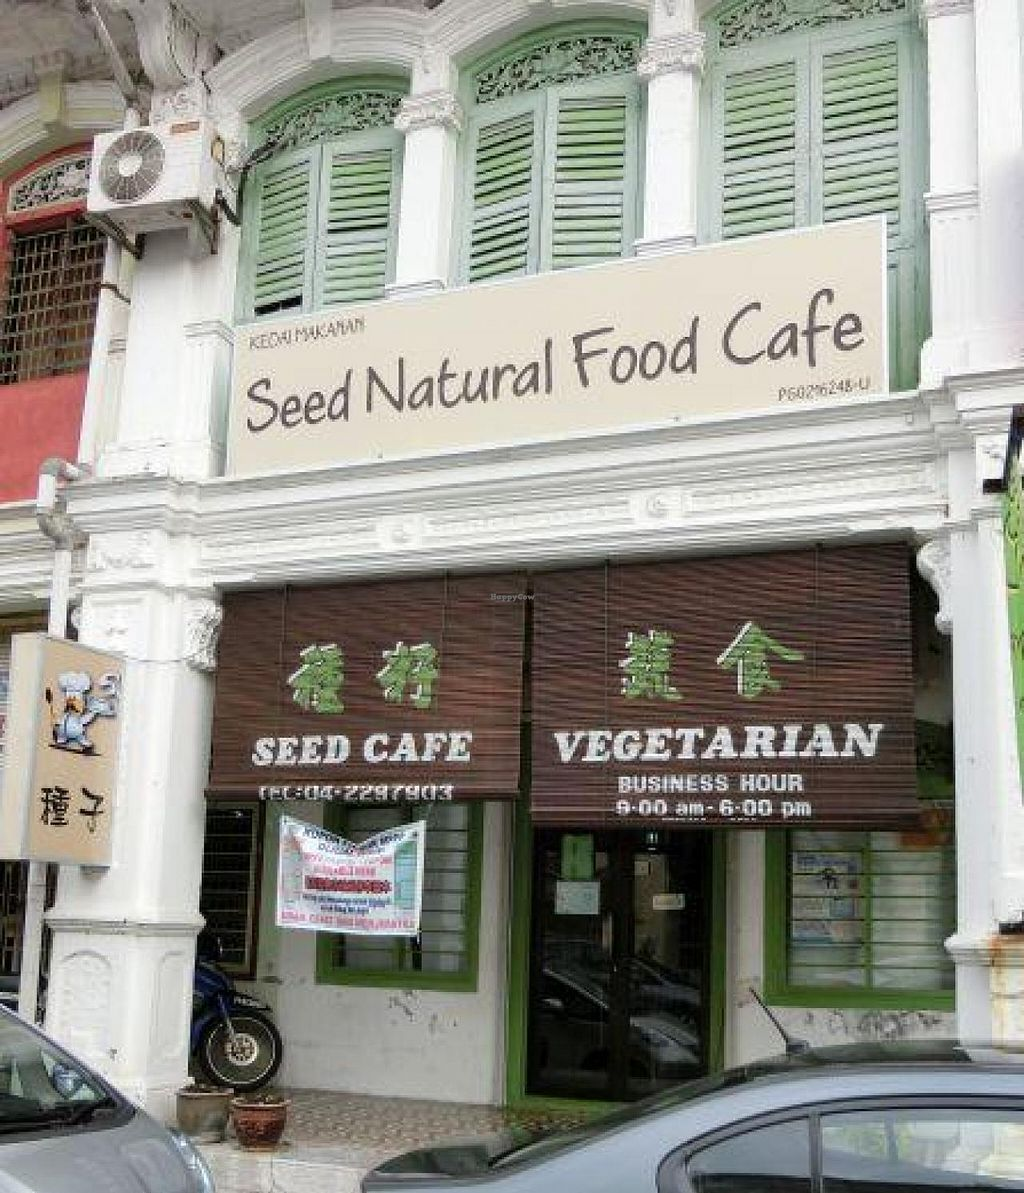 """Photo of CLOSED: Seed Natural Food Cafe  by <a href=""""/members/profile/Canamon"""">Canamon</a> <br/>2014-09 Front <br/> September 4, 2014  - <a href='/contact/abuse/image/21175/79069'>Report</a>"""